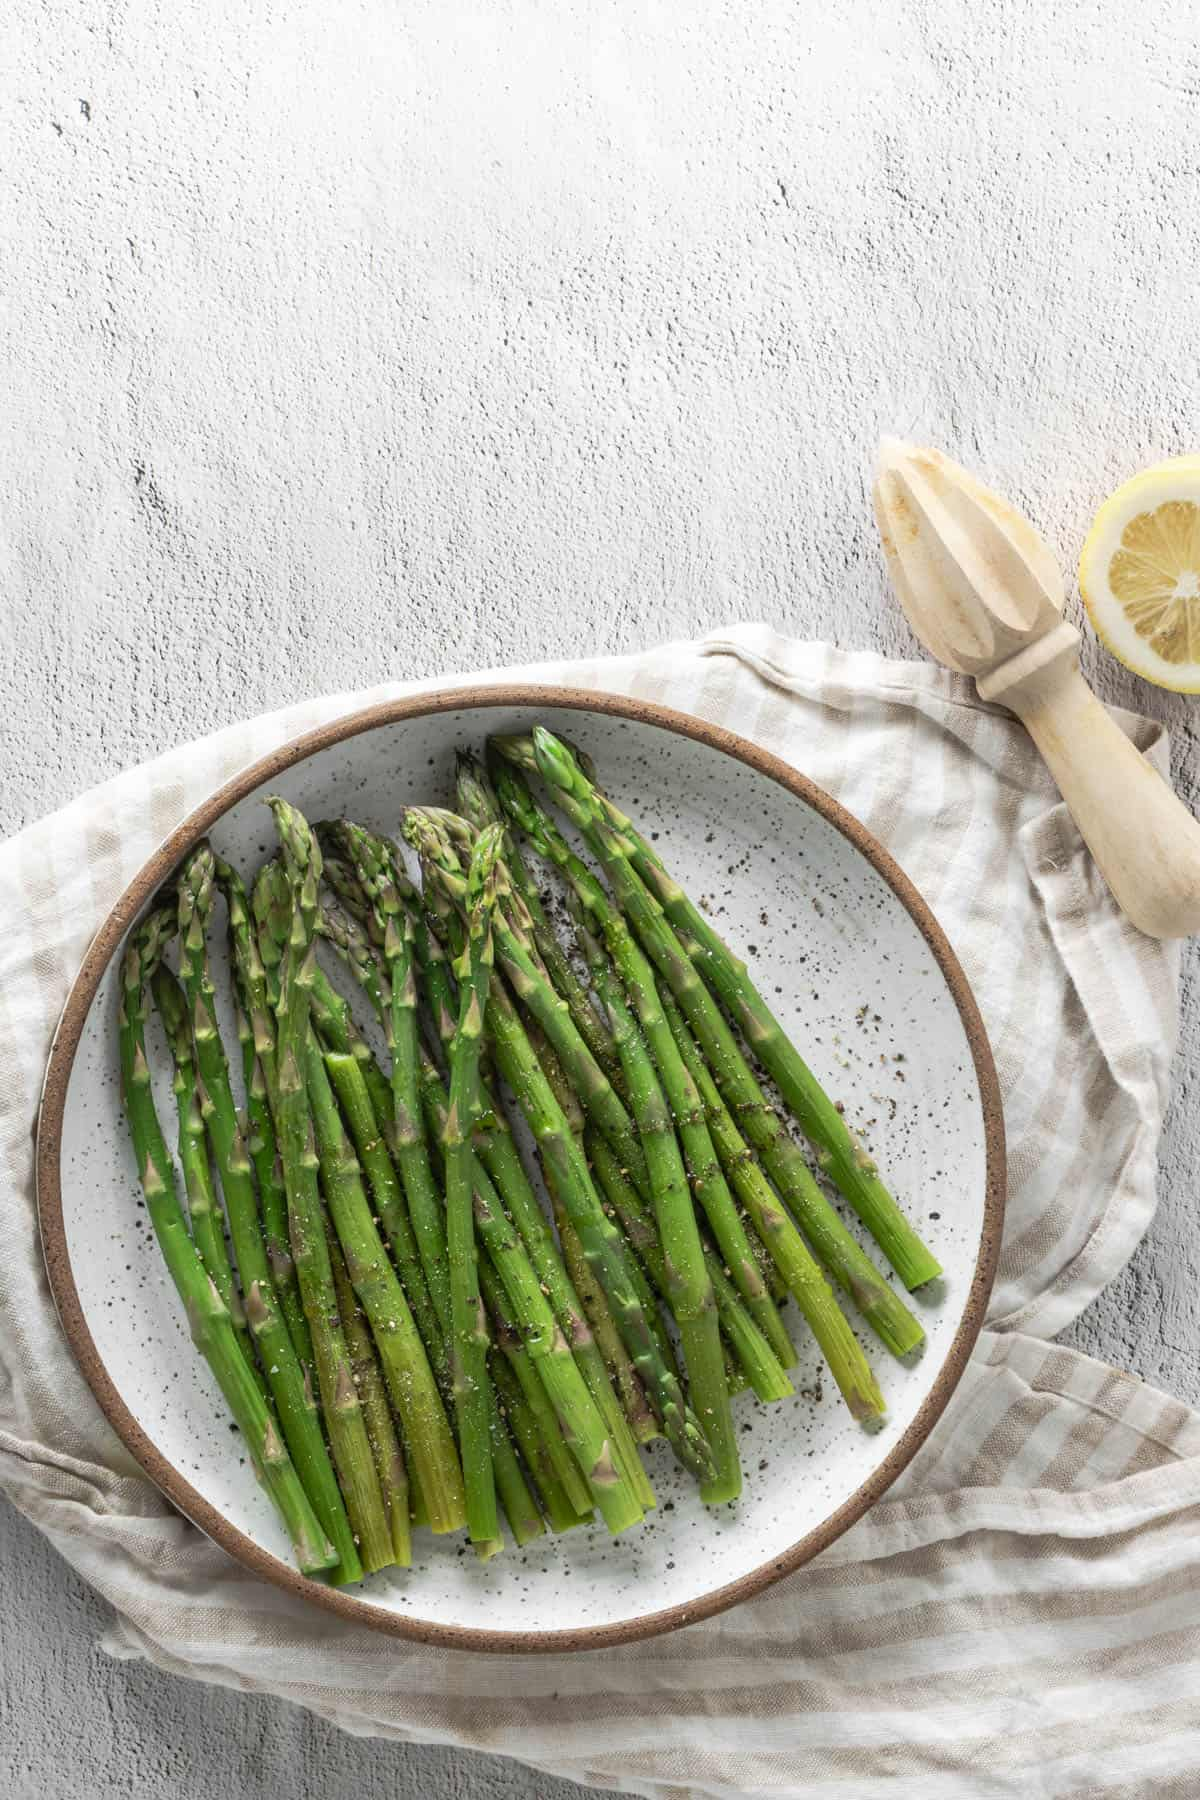 Finished plate of asparagus with lemon on the side